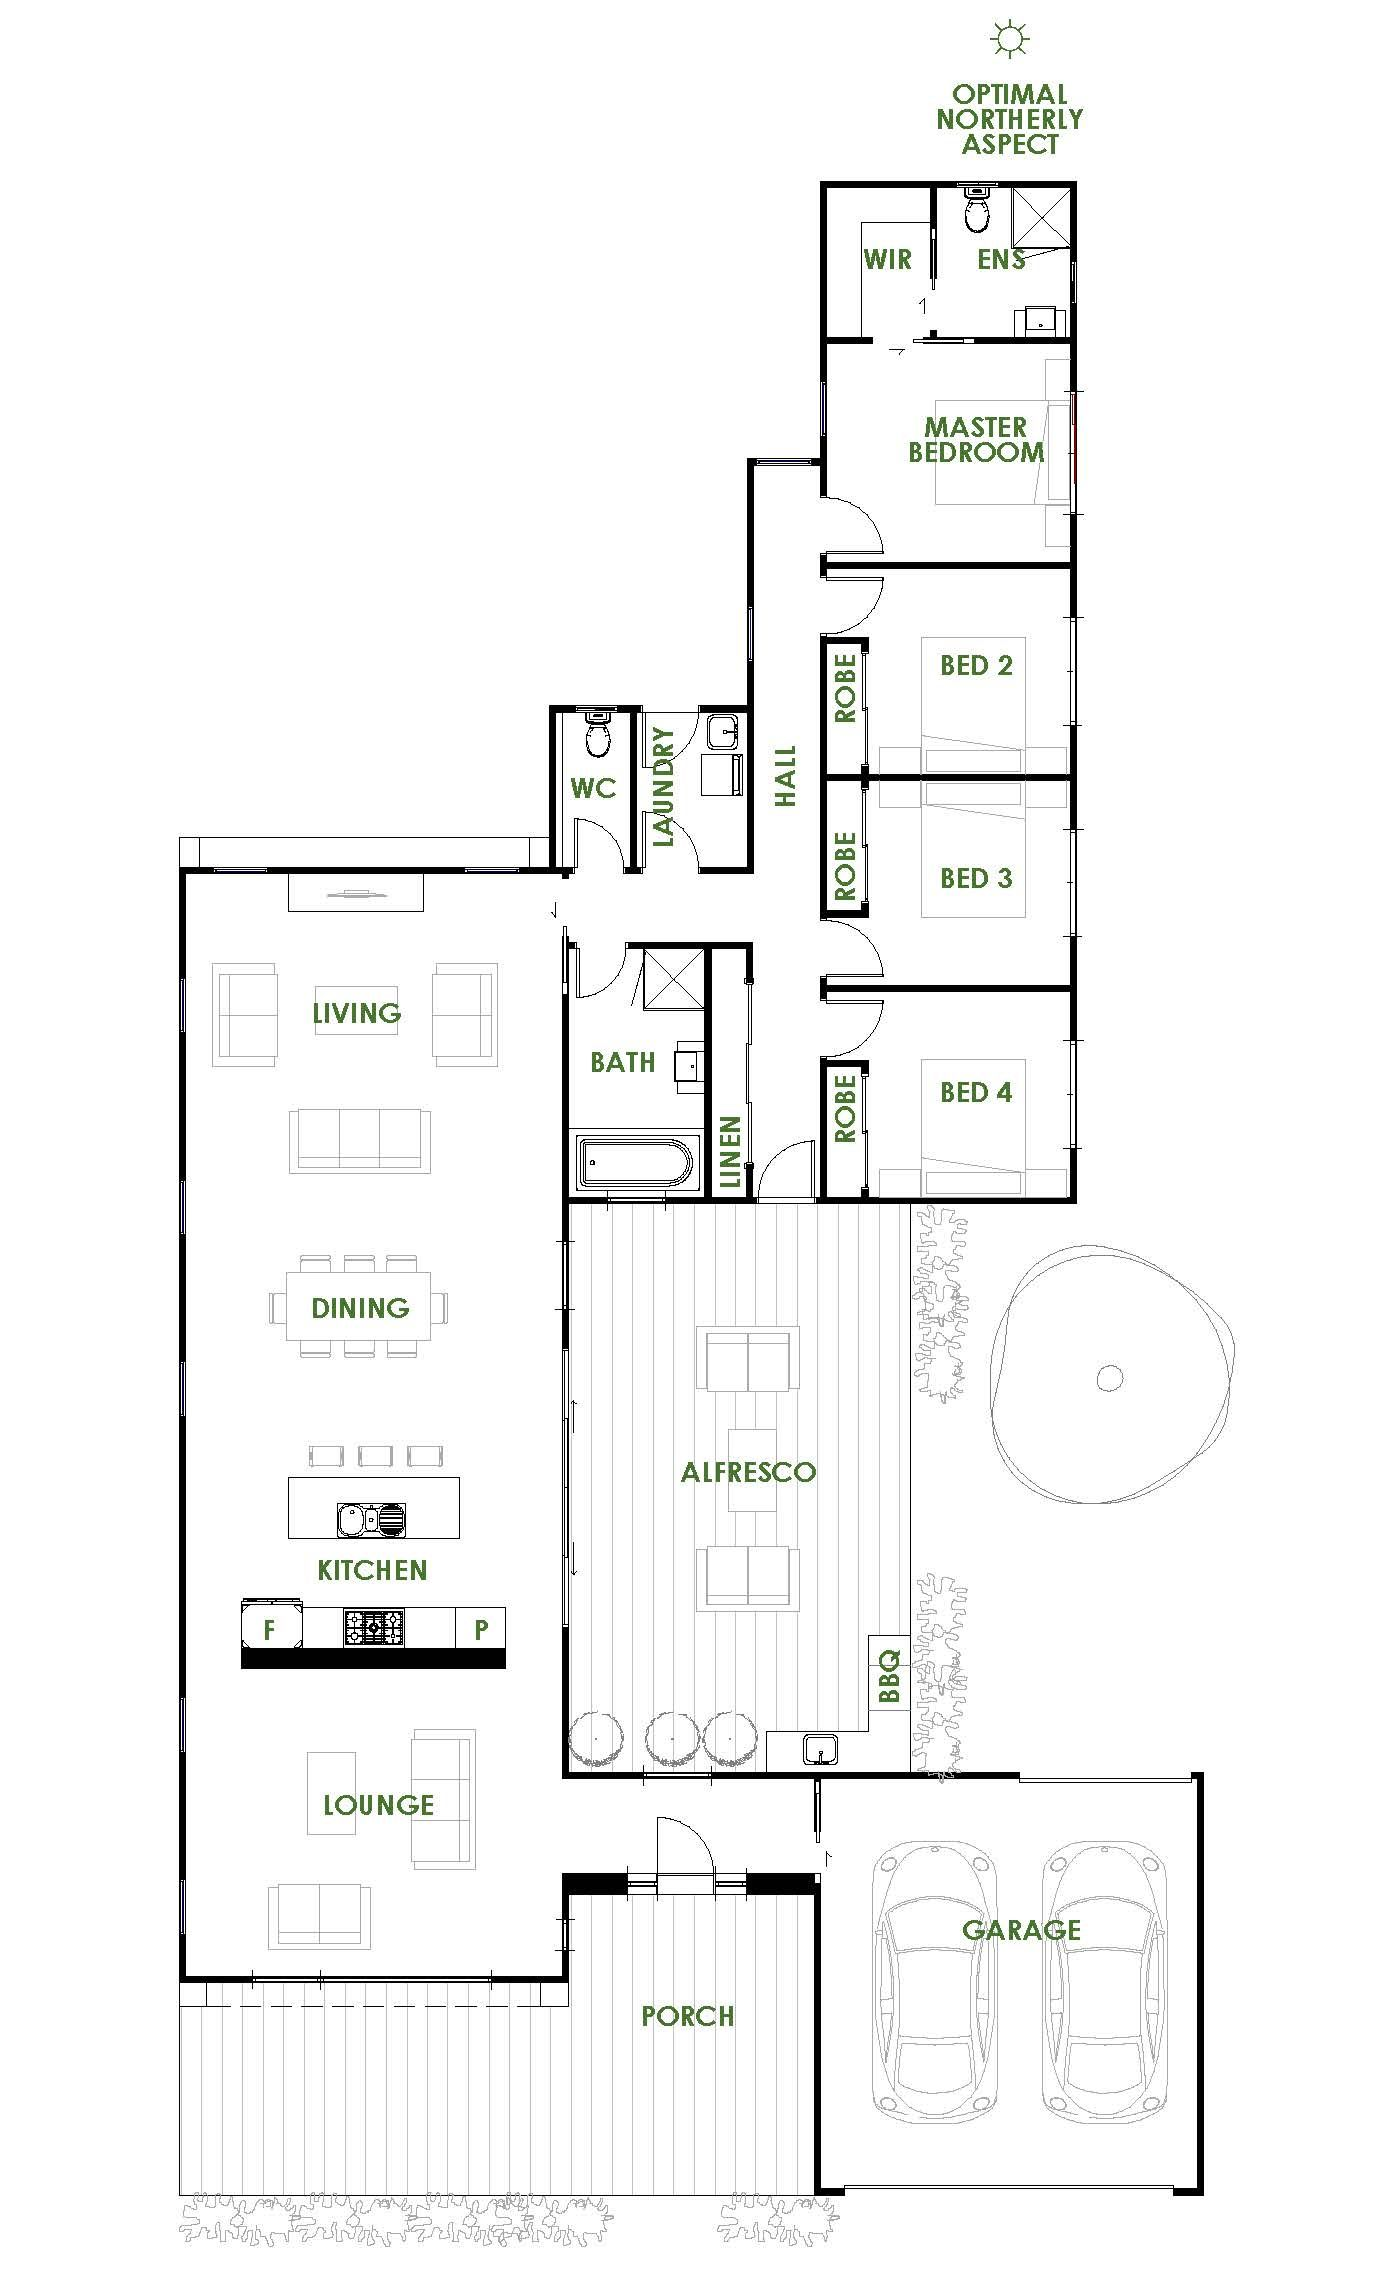 The Gippsland Is An Energy Efficient Architecturally Designed Home Exclusive To Green Homes Au Planos De Casas Planos De Casas Medidas Planos De Casas Modernas